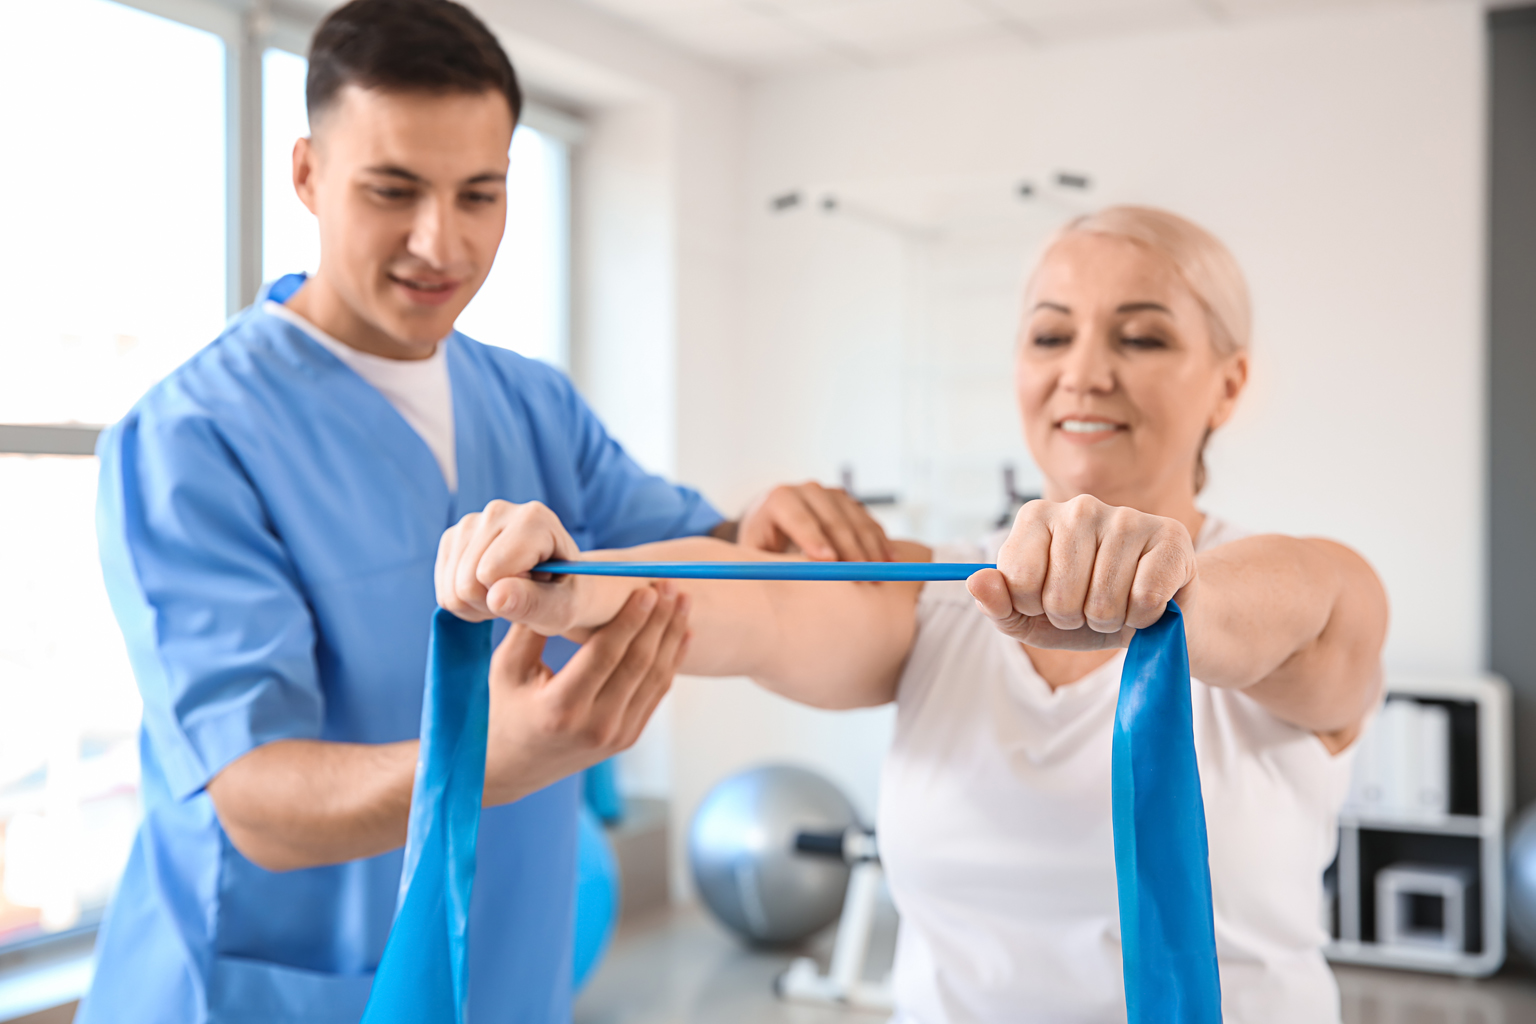 Physiotherapist helping patient with strengthening arms